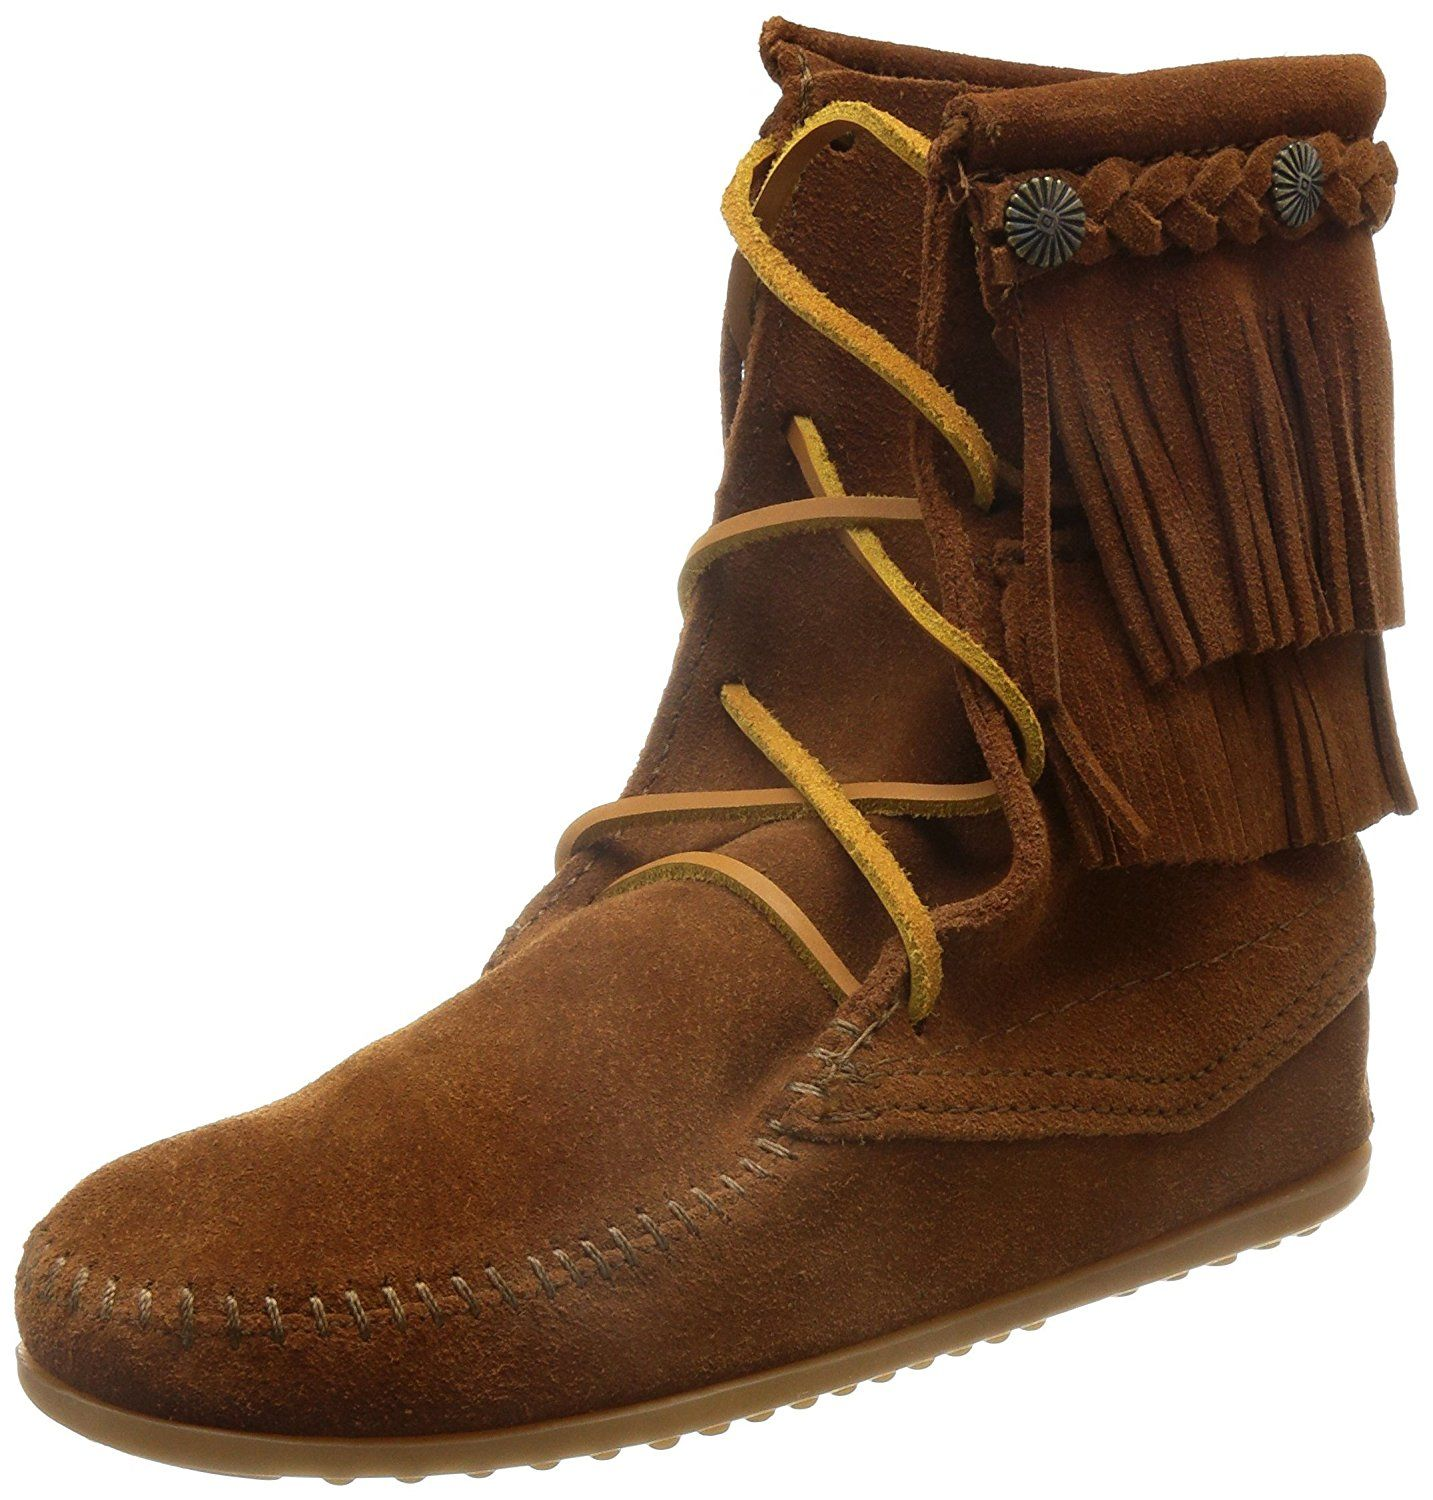 Minnetonka Women S Ankle Hi Tramper Boot This Is An Amazon Affiliate Link Click Image For More Details Boots Brown Boots Women Boot Shoes Women